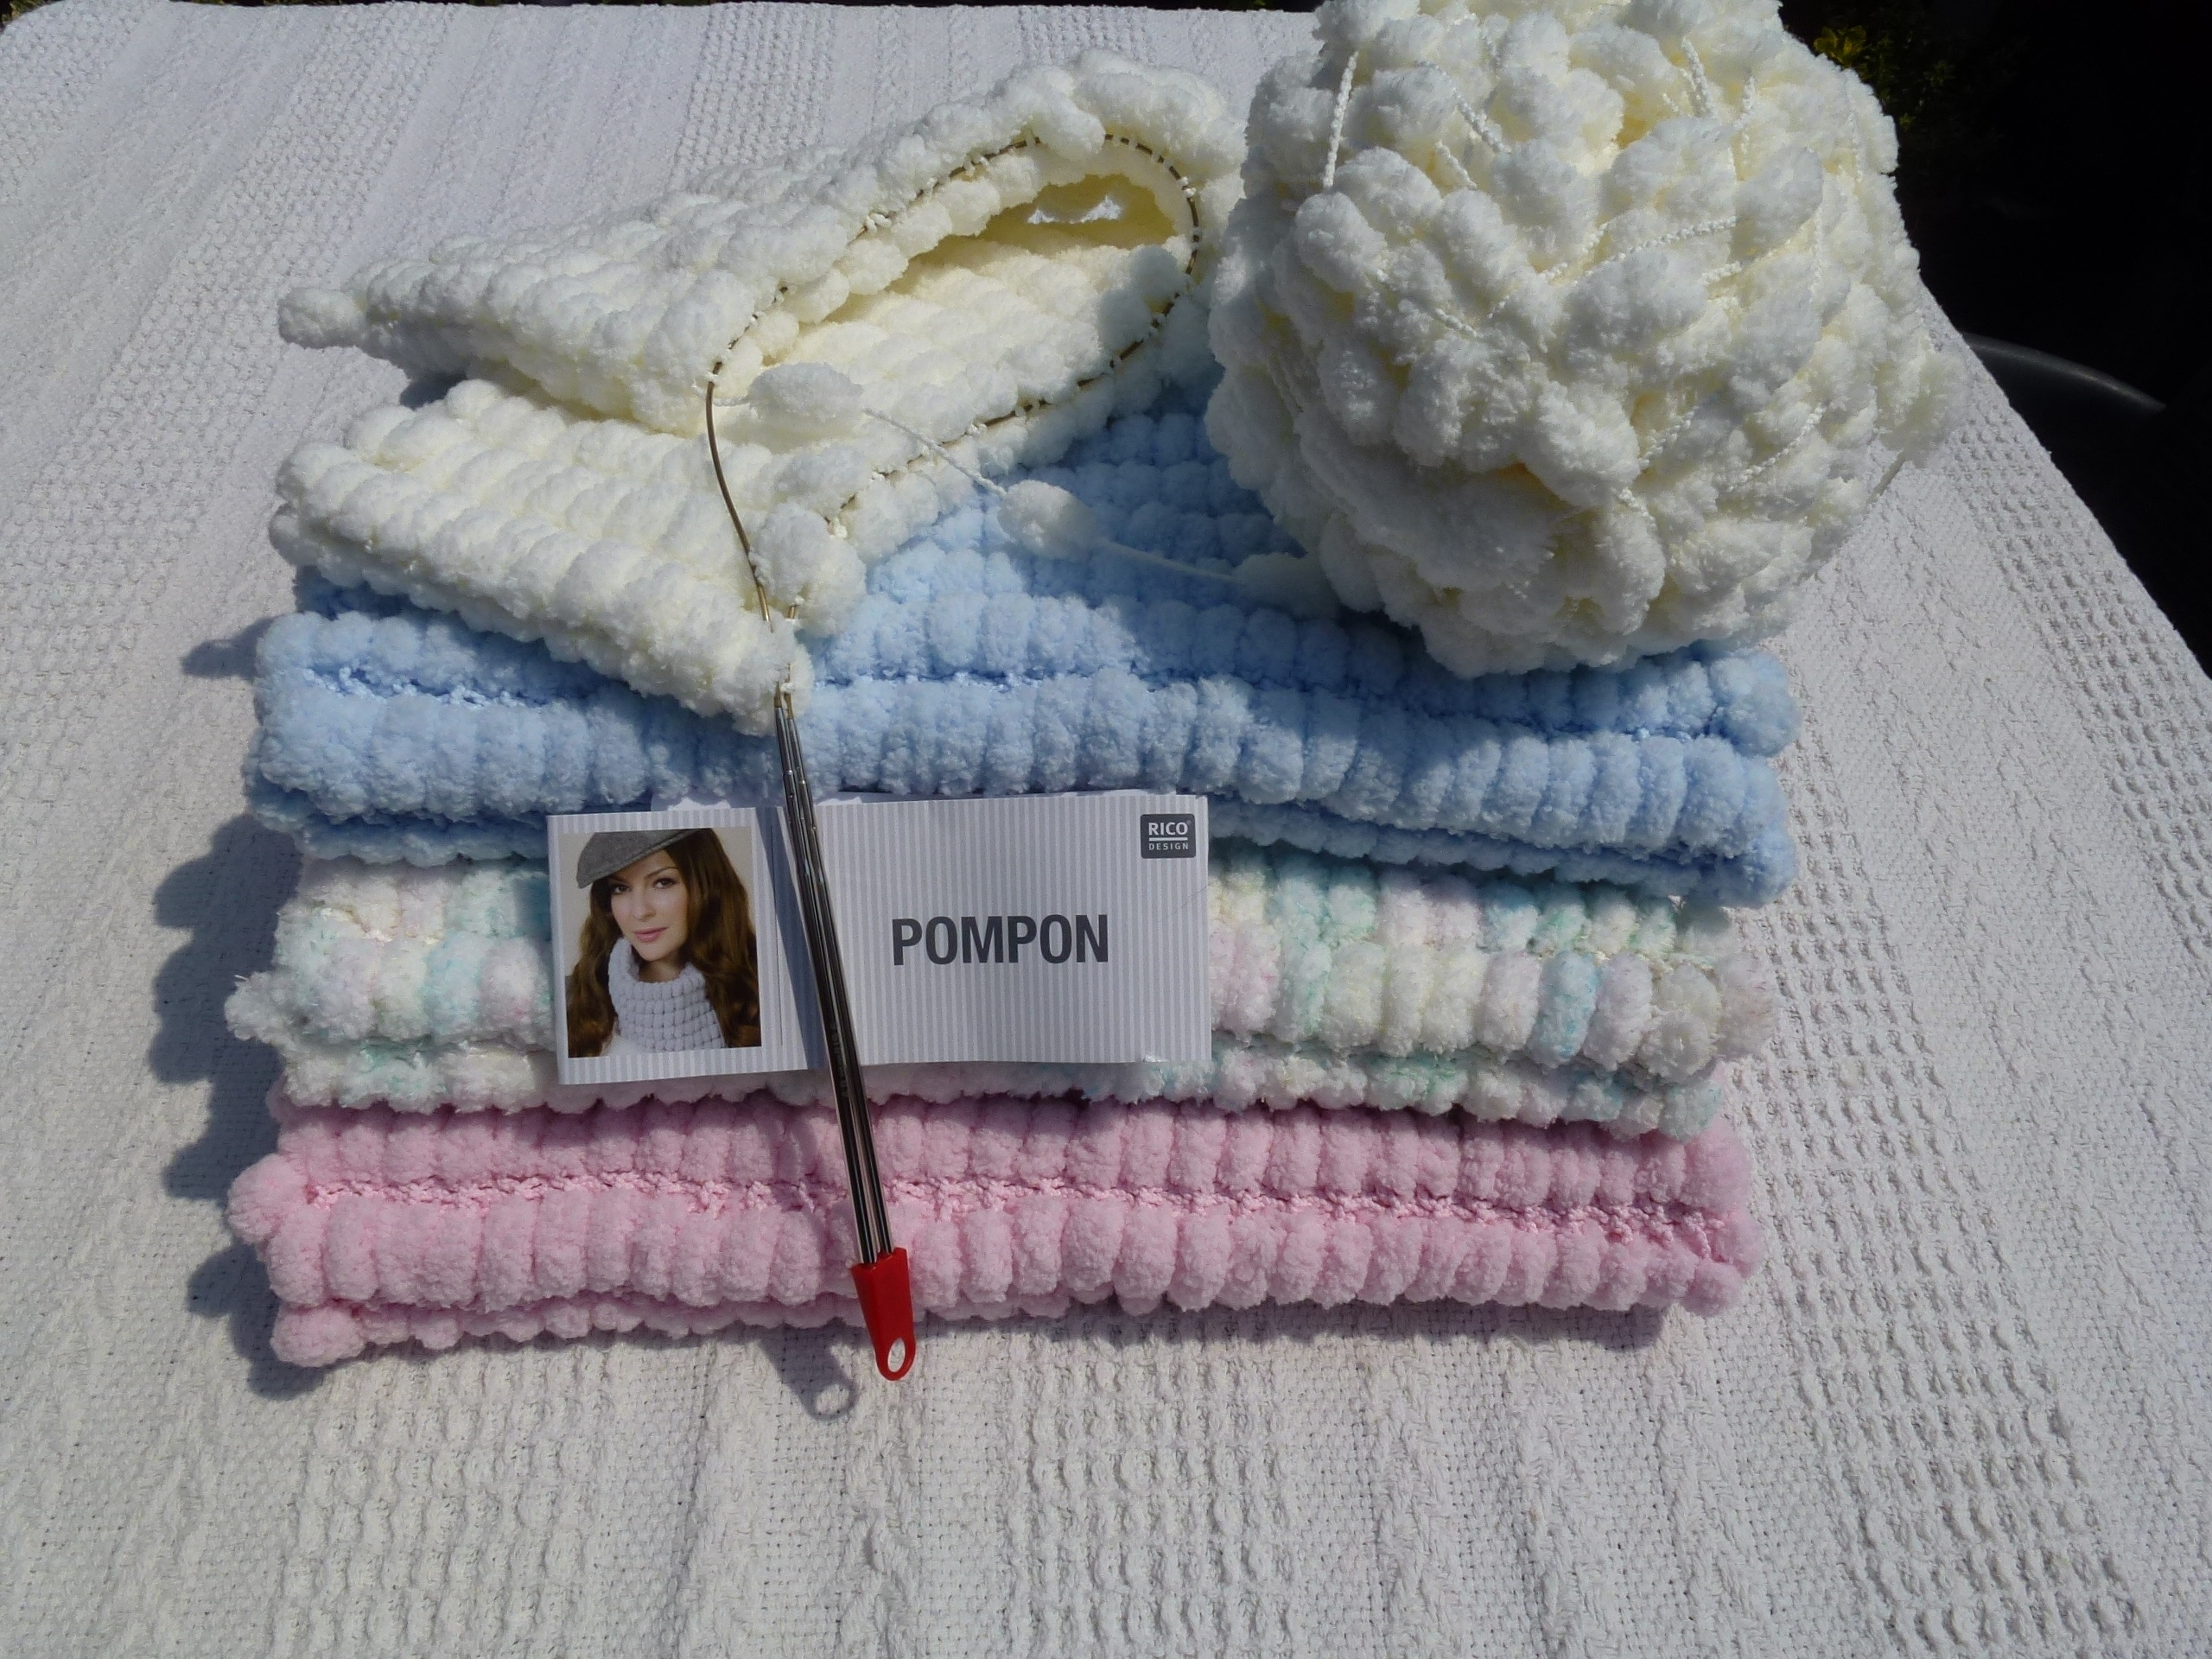 baby chair seat modern stackable chairs pompon yarn blanket for moses basket, pram or car knitting project by marilyn l ...